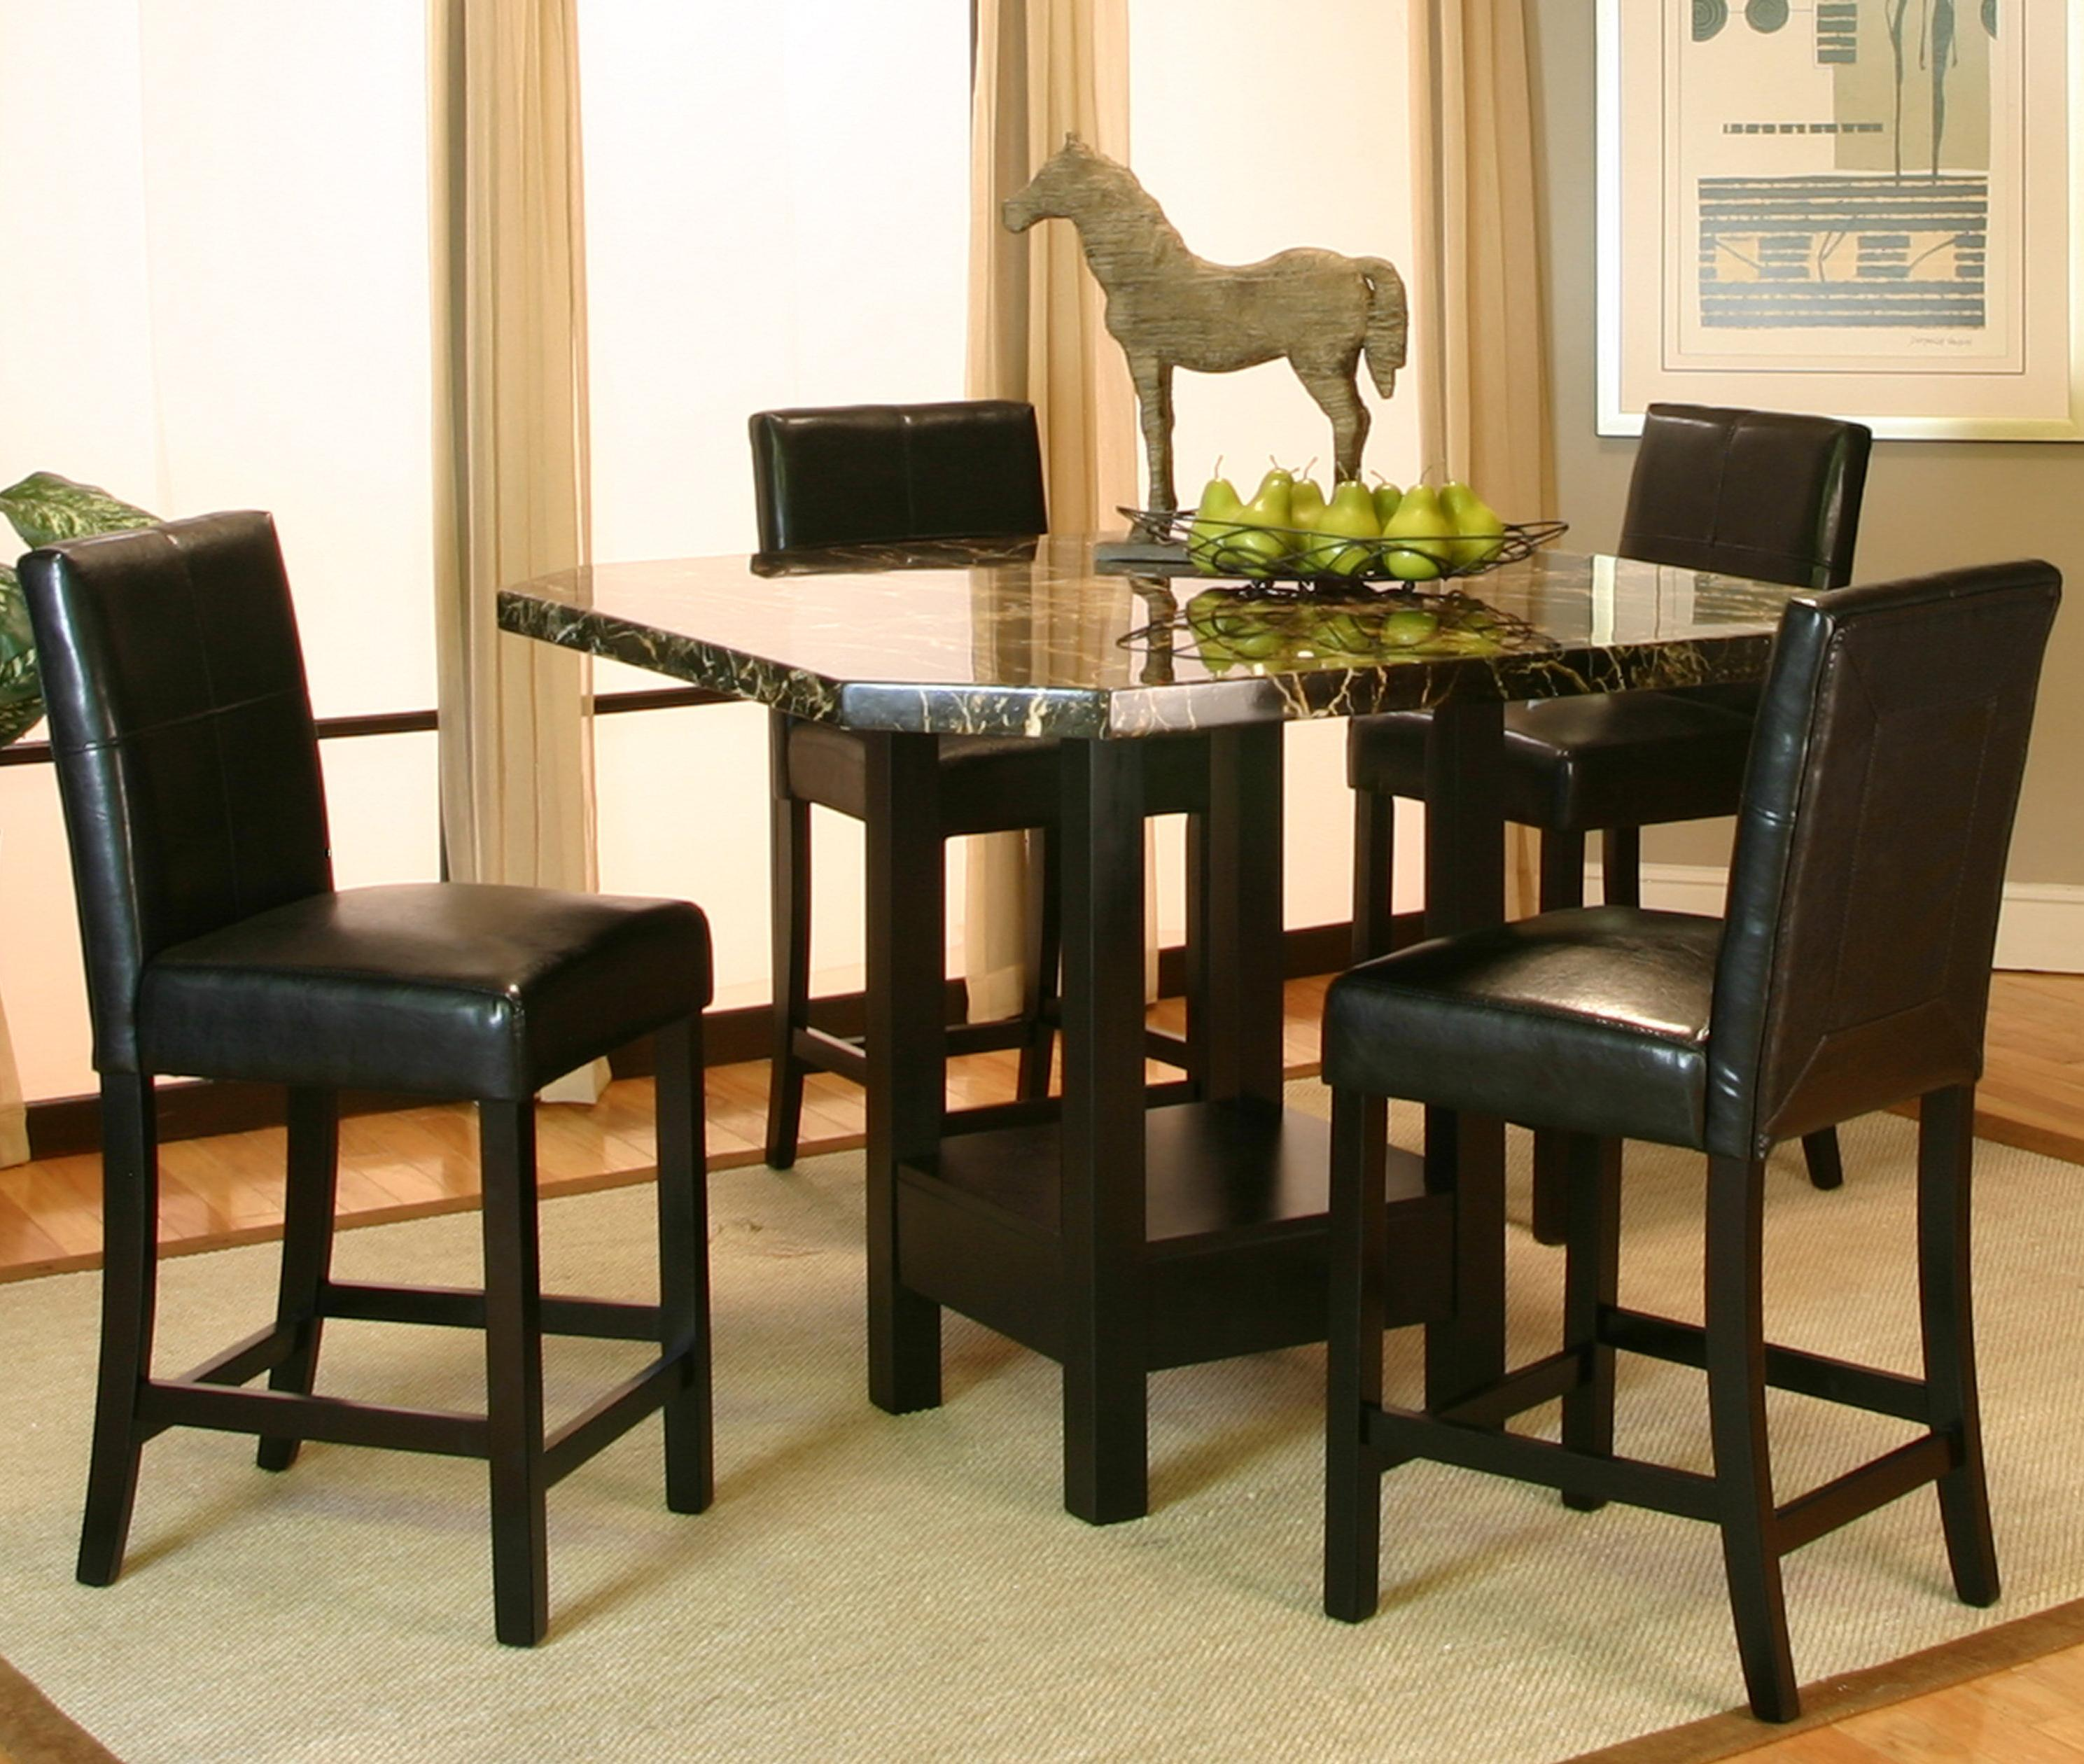 5 Piece Pub Table and Stool Set by Cramco, Inc | Wolf and Gardiner ...